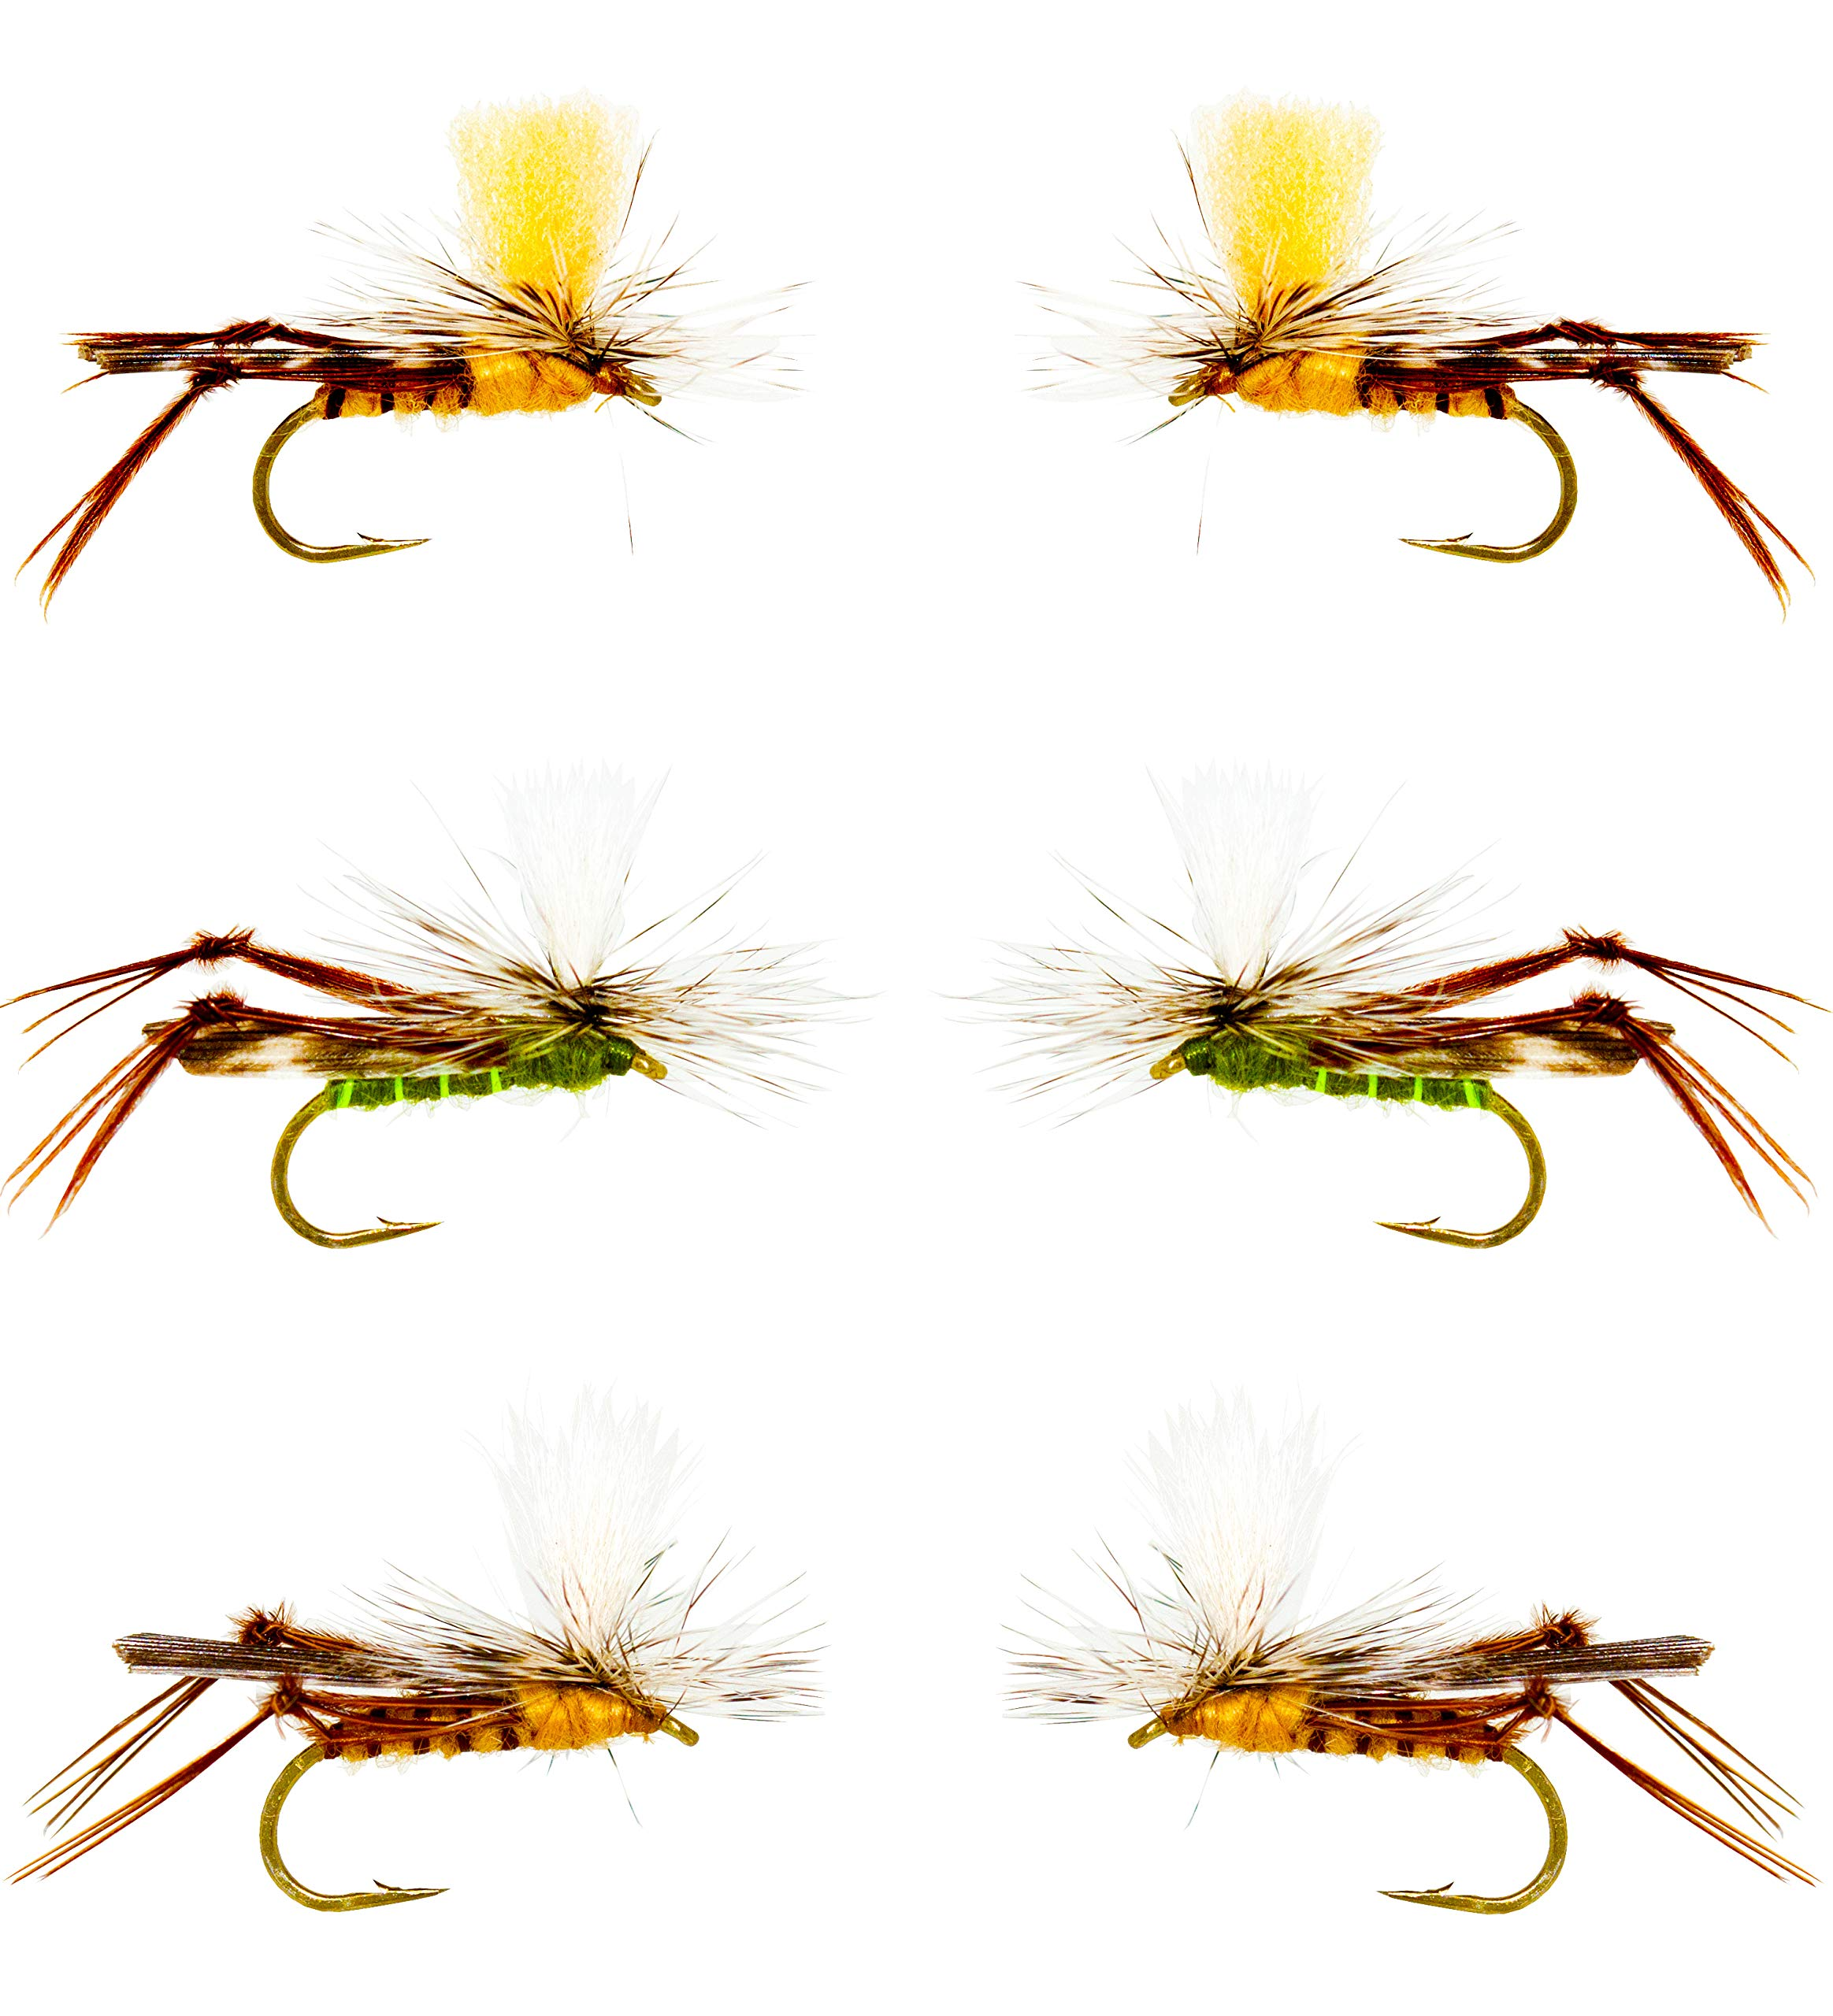 Outdoor Planet 12 Parachute Hopper Dry Flies for Trout Fly Fishing Flies Lure Assortment by Outdoor Planet